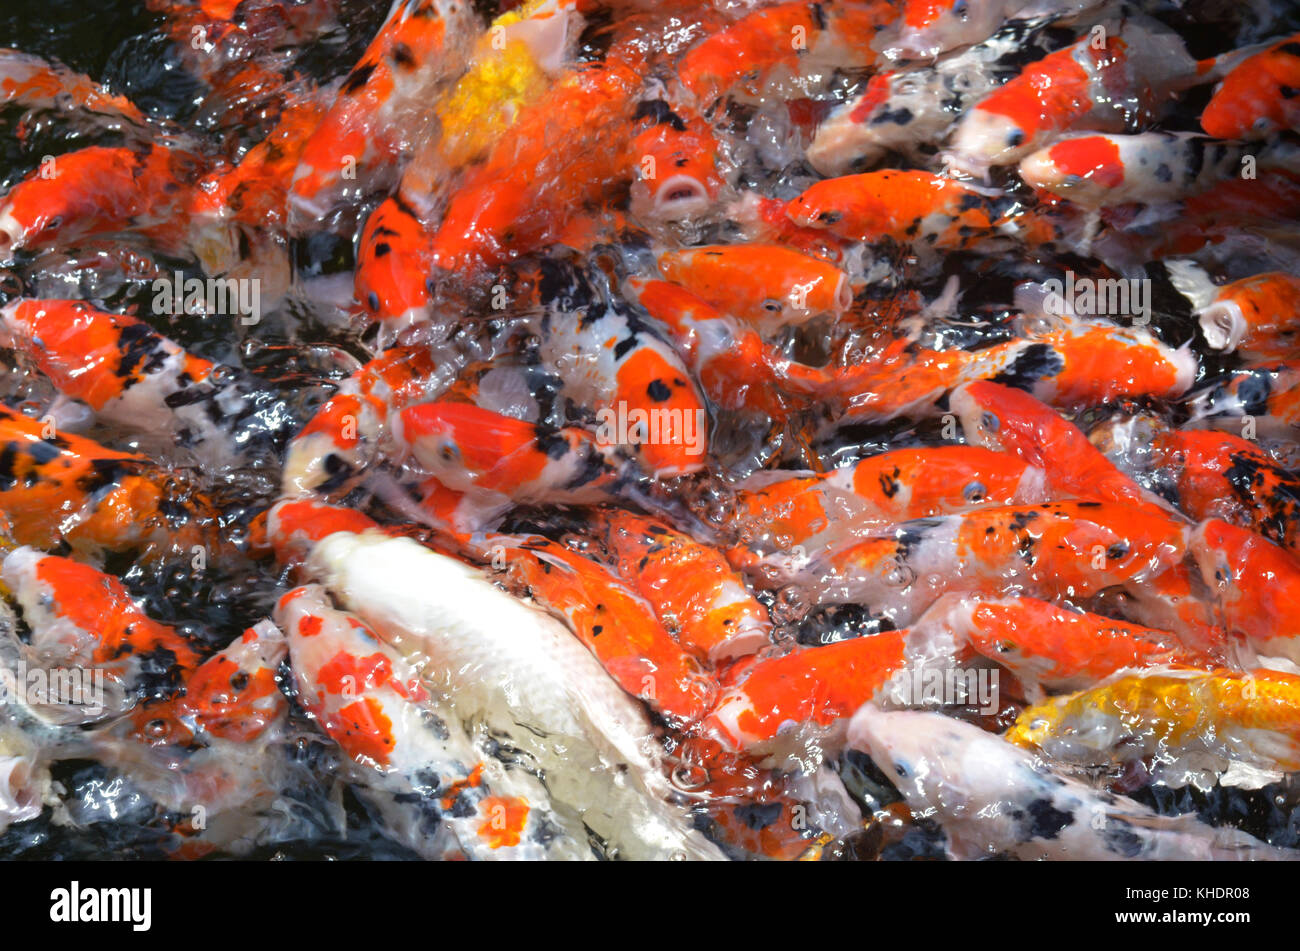 Koi Fish Feed Stock Photos & Koi Fish Feed Stock Images - Alamy